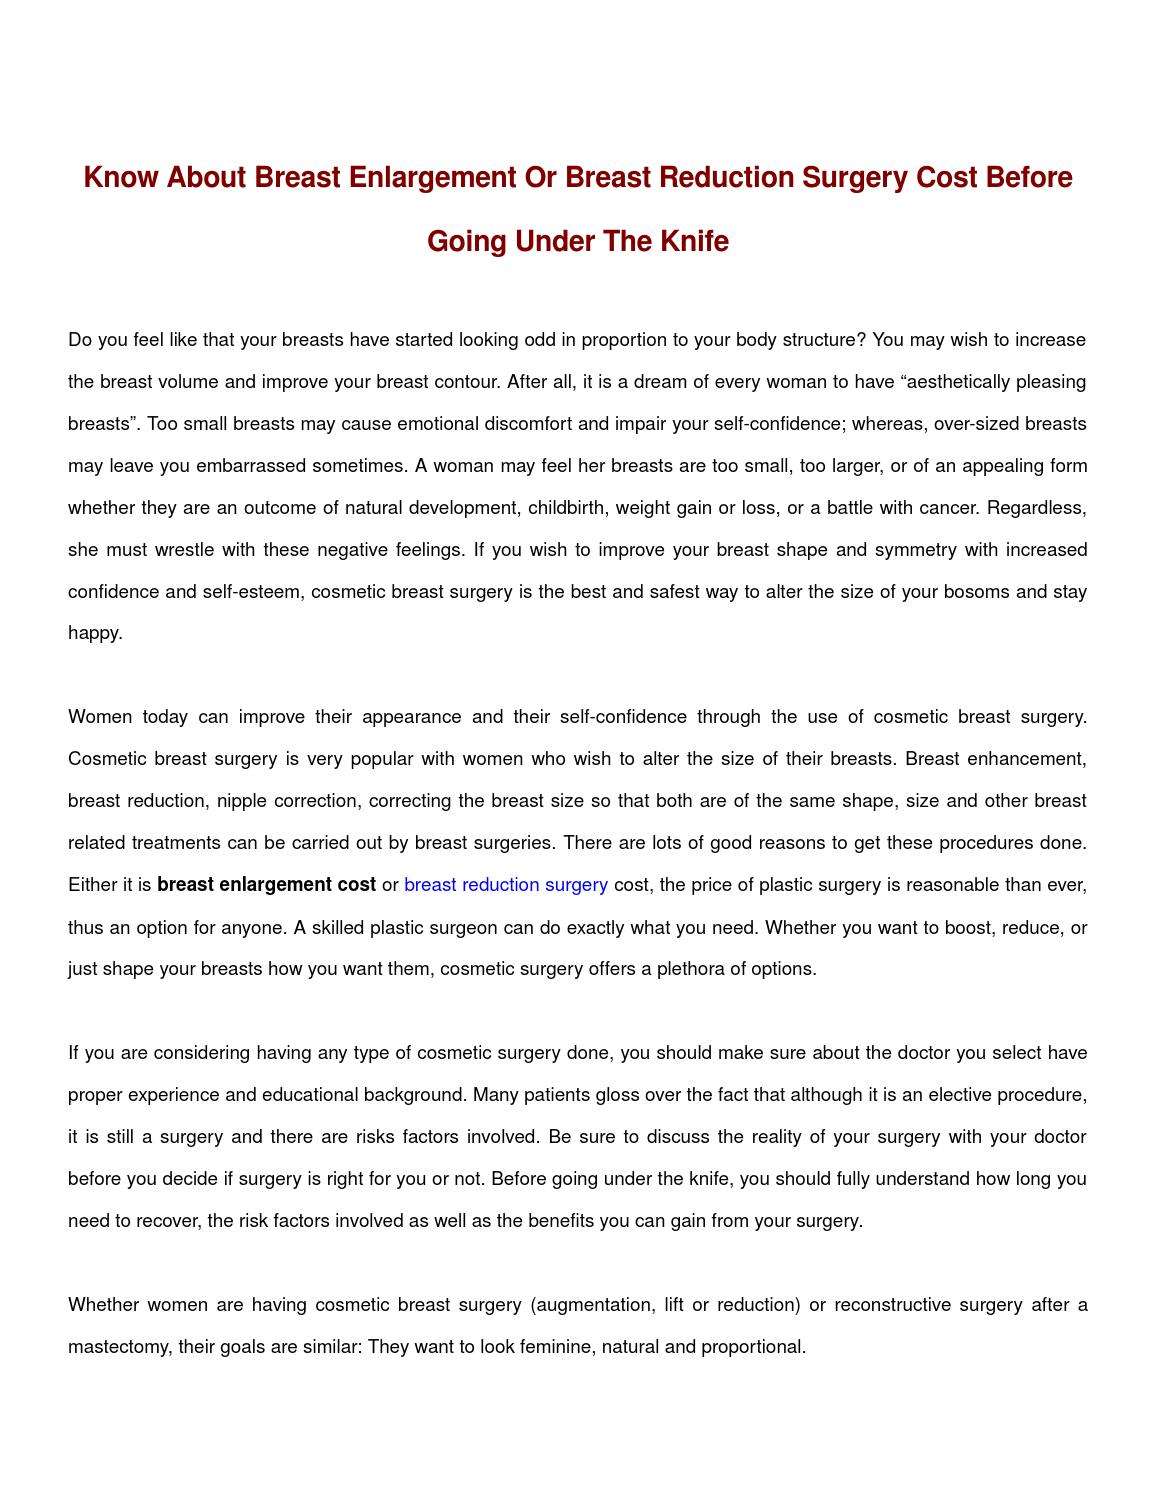 d81f387e01 Know about breast enlargement or breast reduction surgery cost before going  under the knife by Alia William - issuu